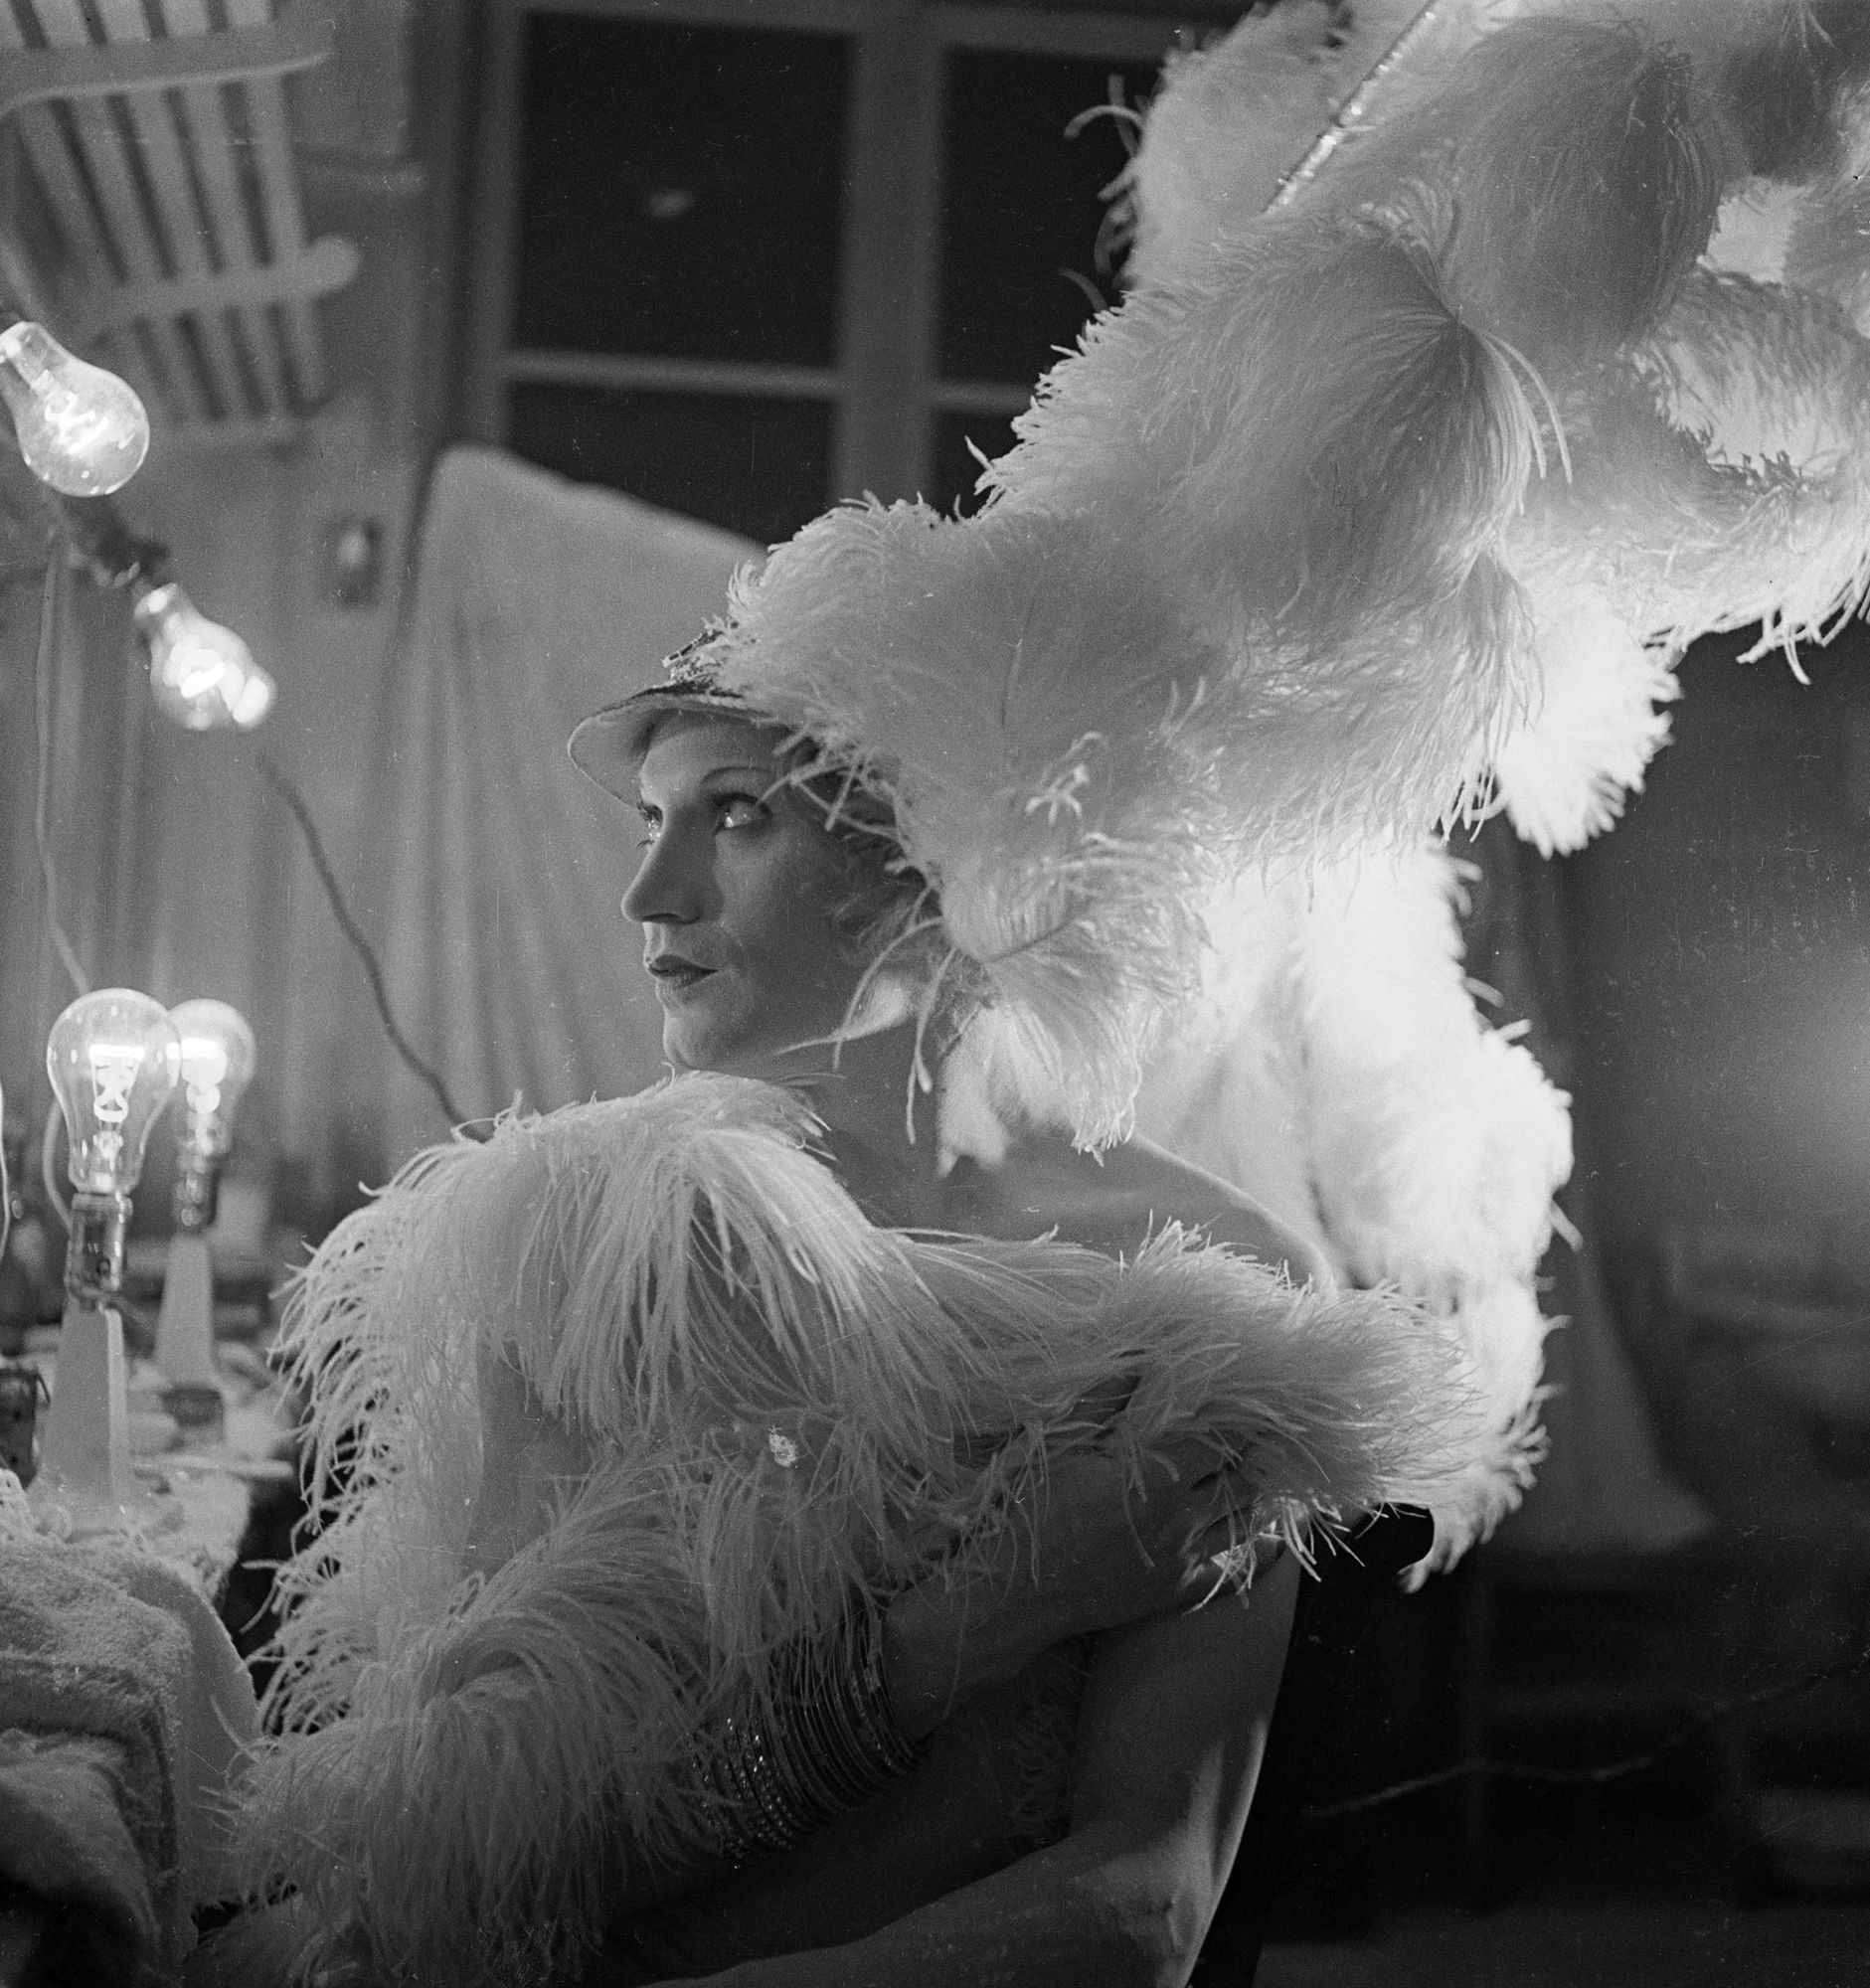 Barbette, artiste de music-hall travesti, au théâtre de l'Empire, à Paris, en 1937.